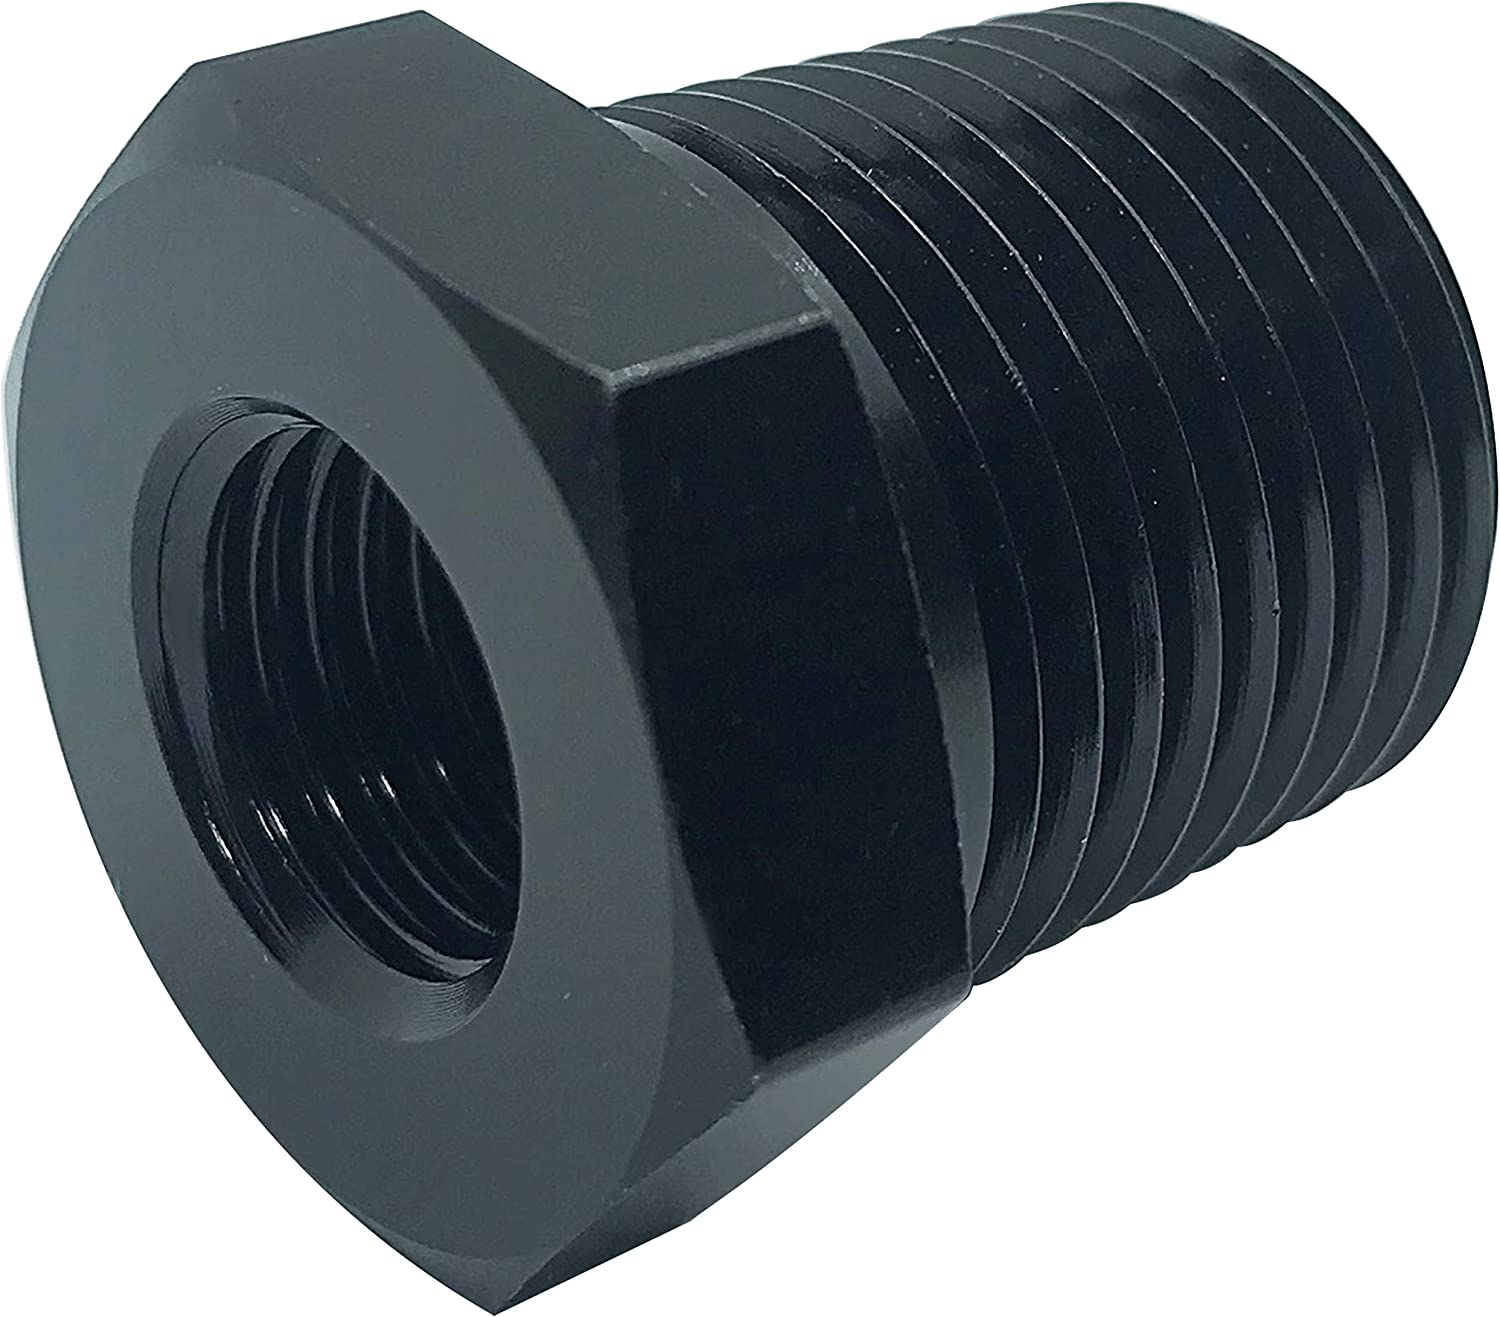 3//8 NPT Female to 1//8 Male NPT Hose Reducer Union Fitting Adapter Hex Bushing 3//8-1//8 NPT Reducing Pipe Aluminum Anodized Black